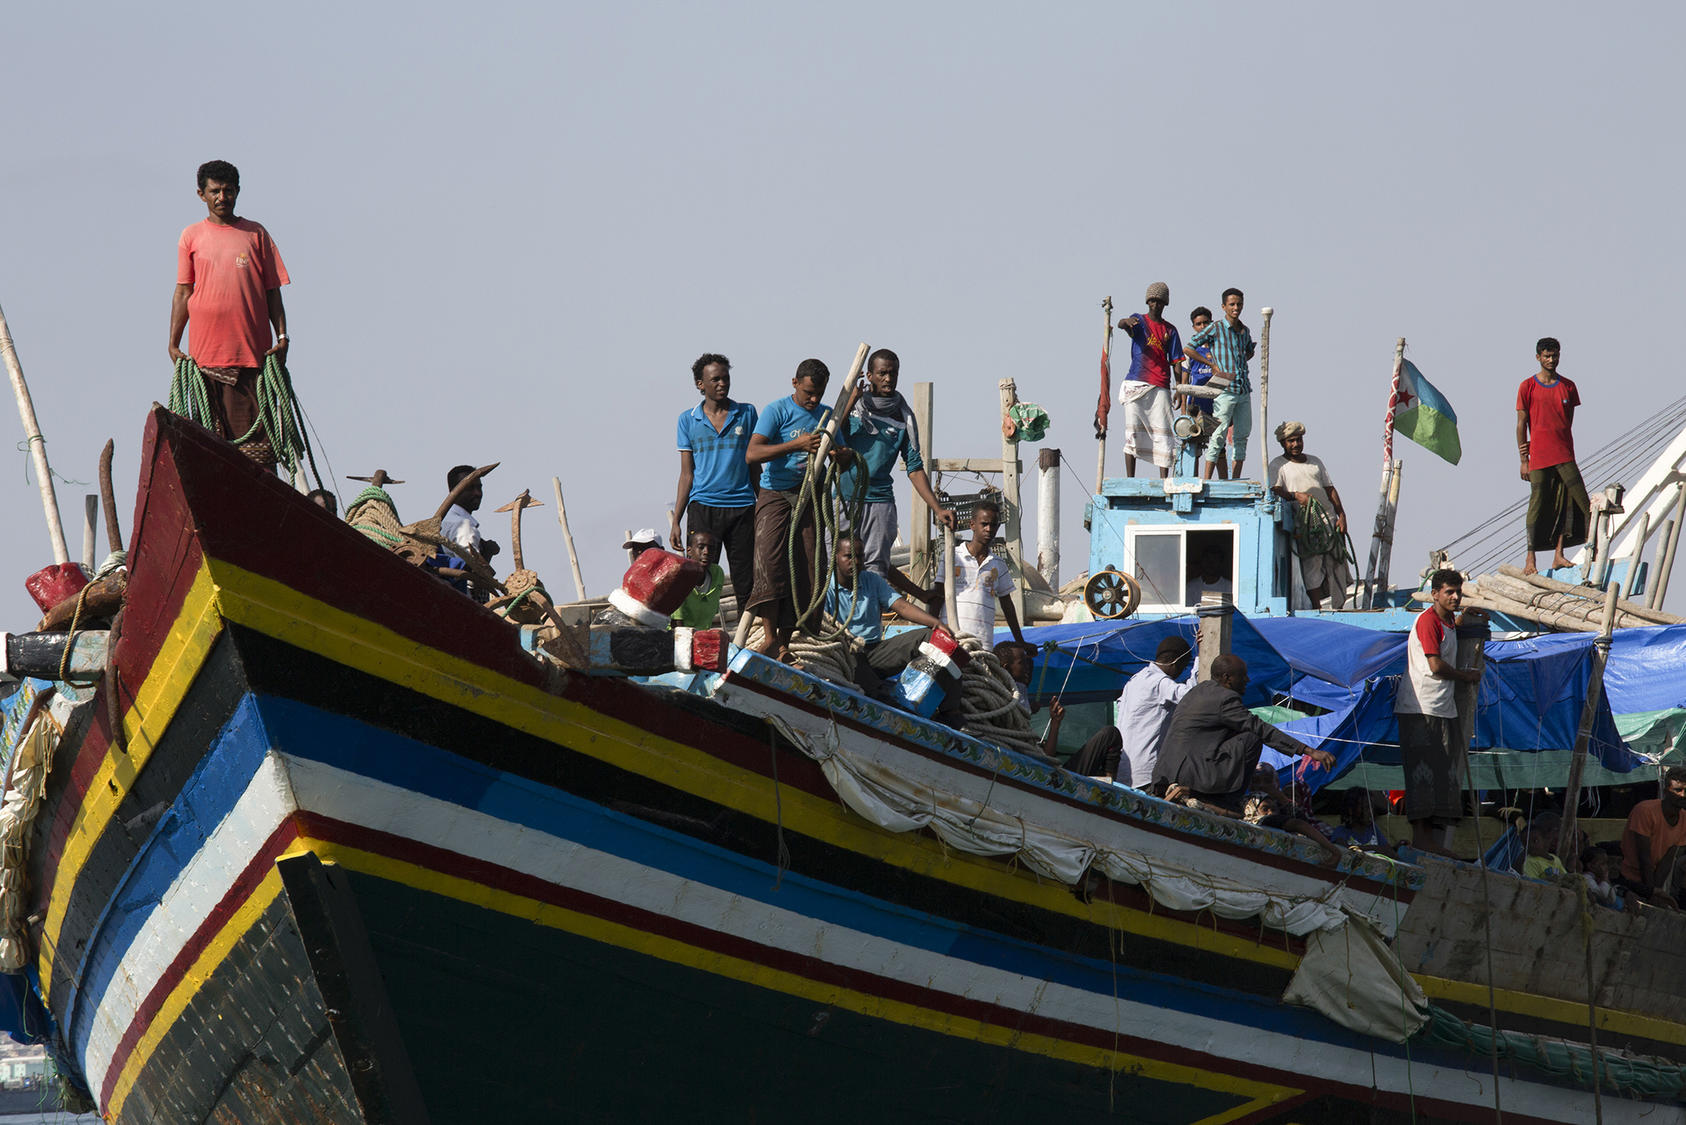 Refugees fleeing the war in Yemen arrive at the port in Djibouti after crossing a narrow strait in the Red Sea, April 20, 2015. (Tyler Hicks/The New York Times)